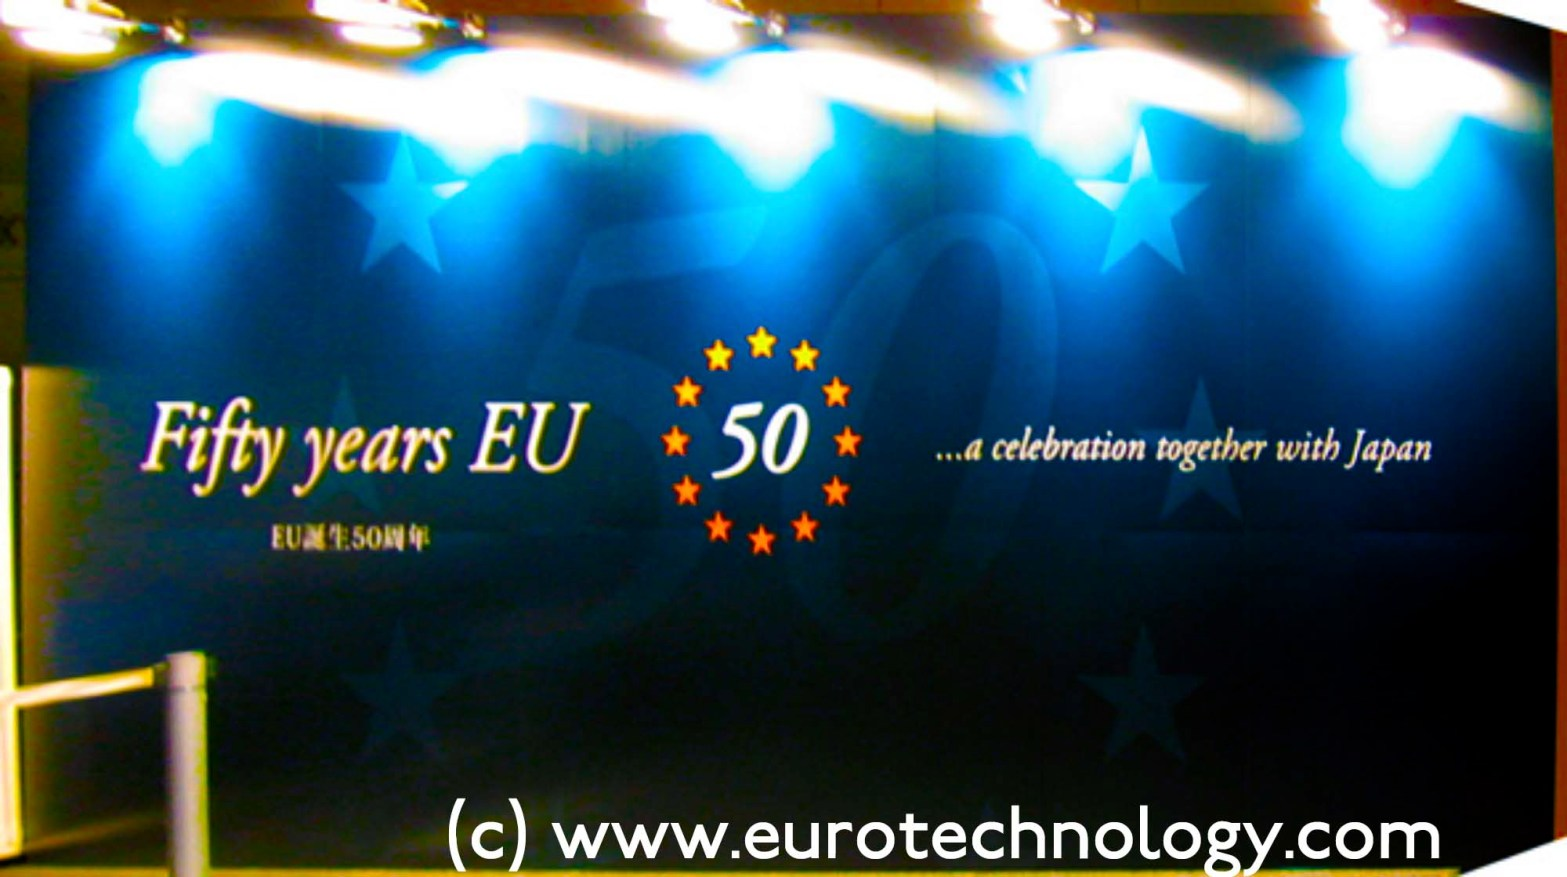 50th anniversary of the Treaty of Rome which was at the beginning of the European Union